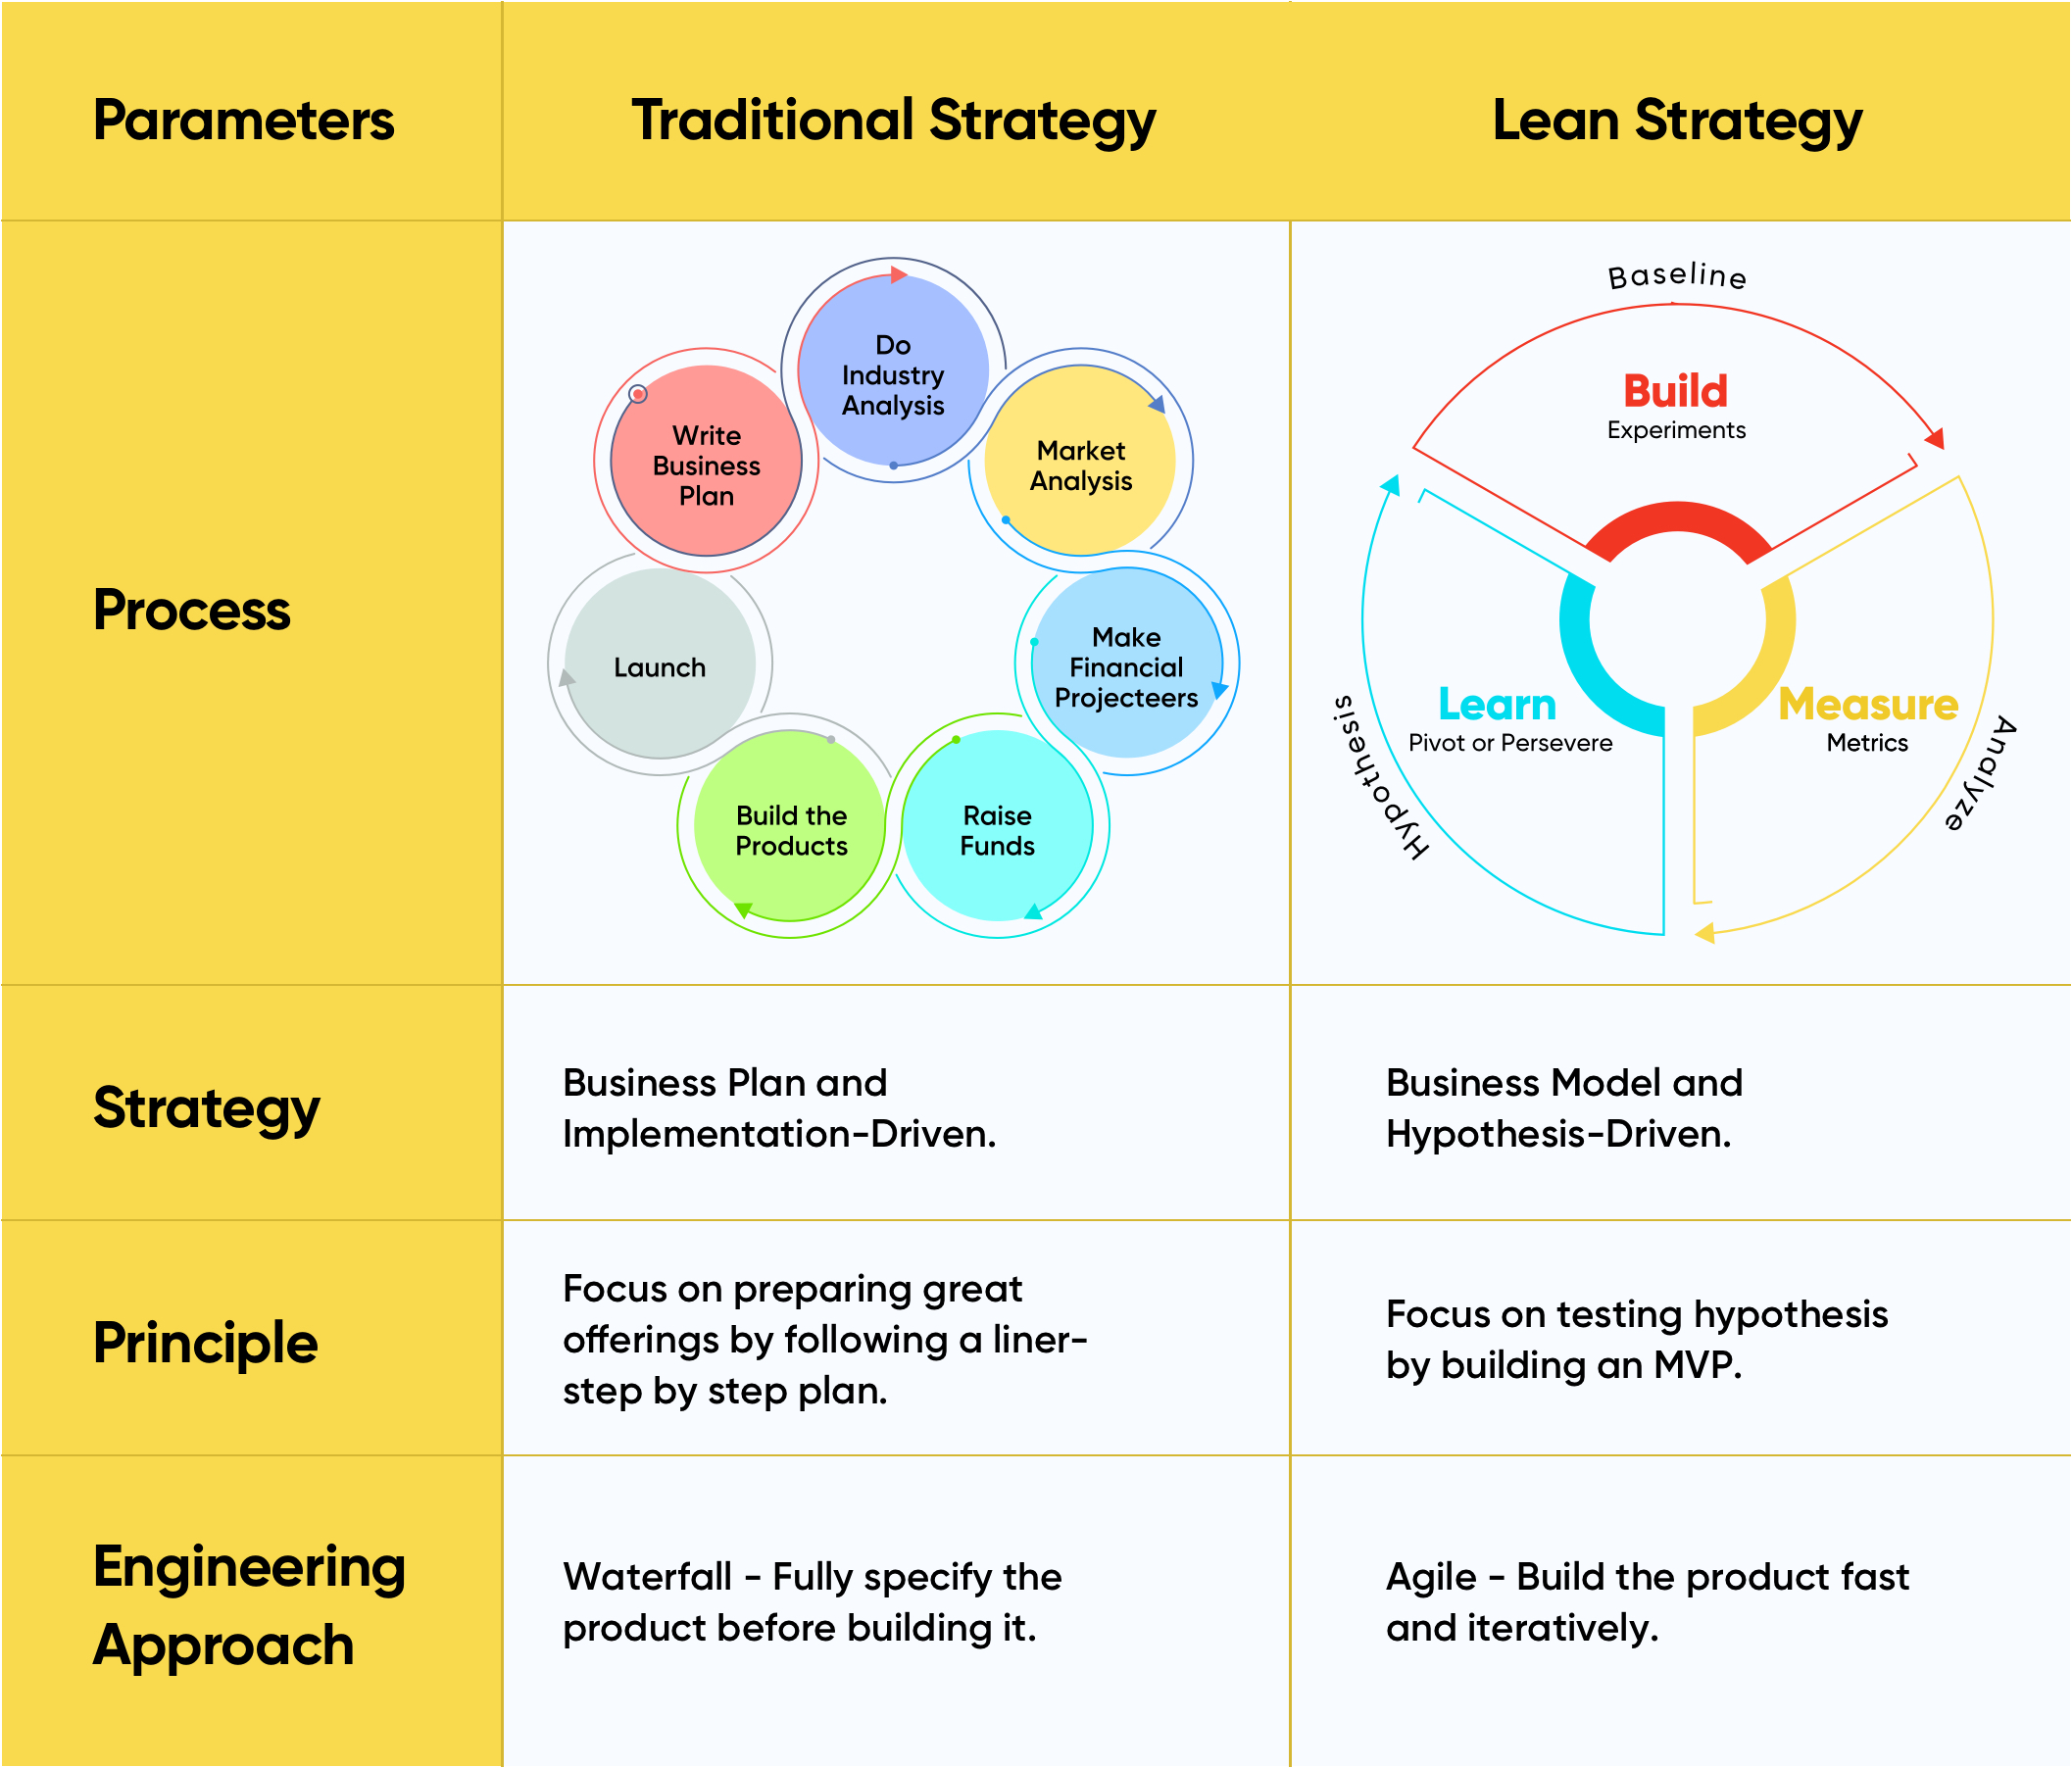 Difference between traditional and lean strategy